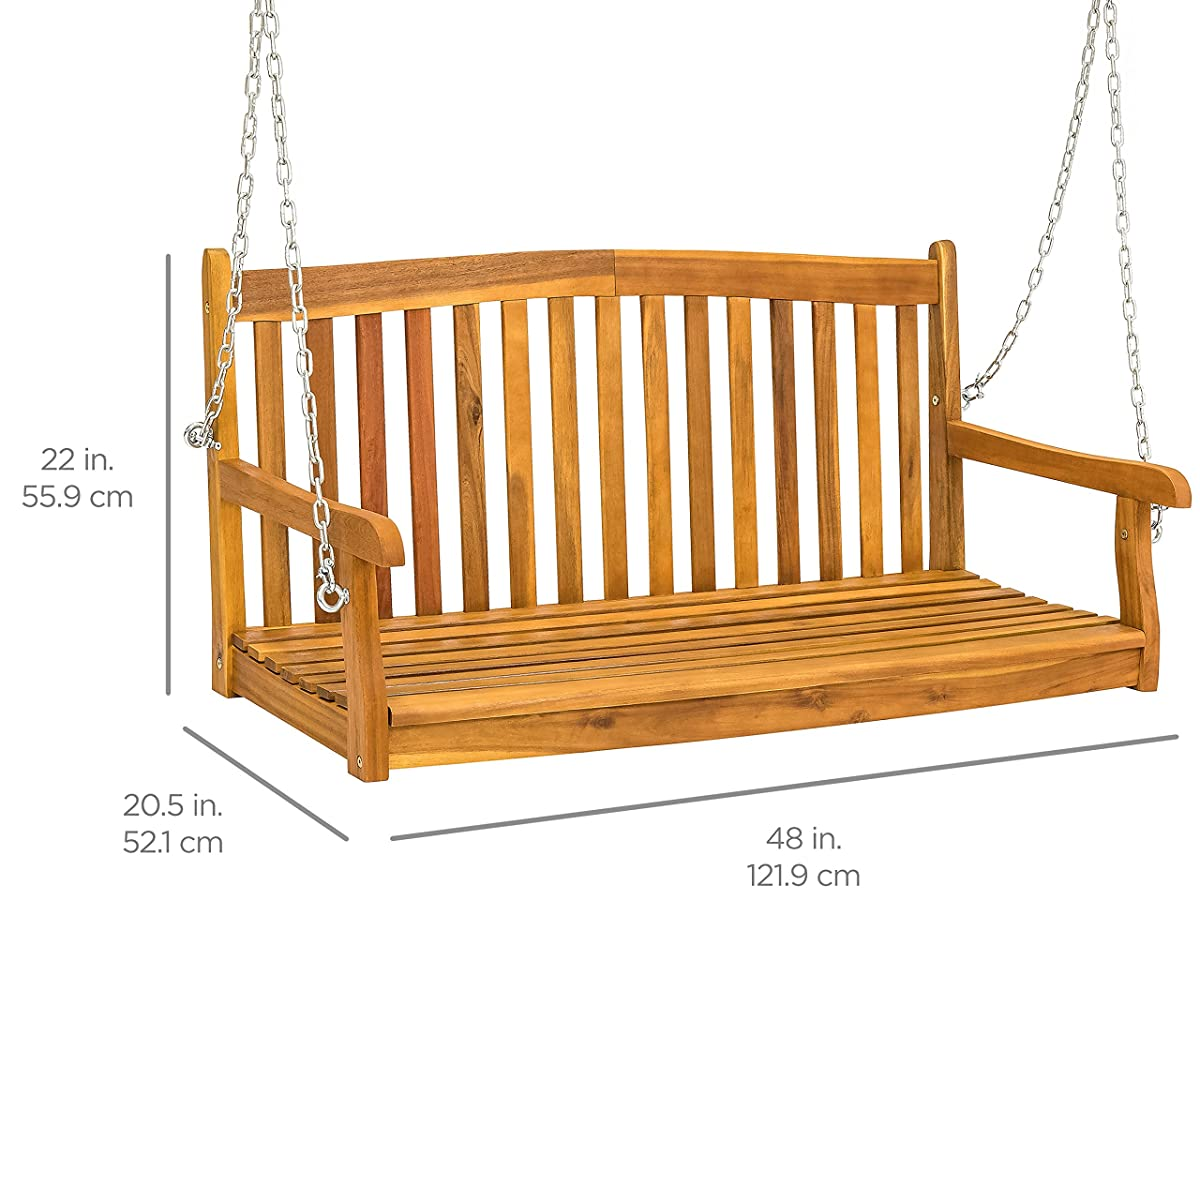 Best Choice Products 48in Wooden Porch Furniture Swing Bench for Patio, Deck, Garden w/Metal Hanging Chains - Brown